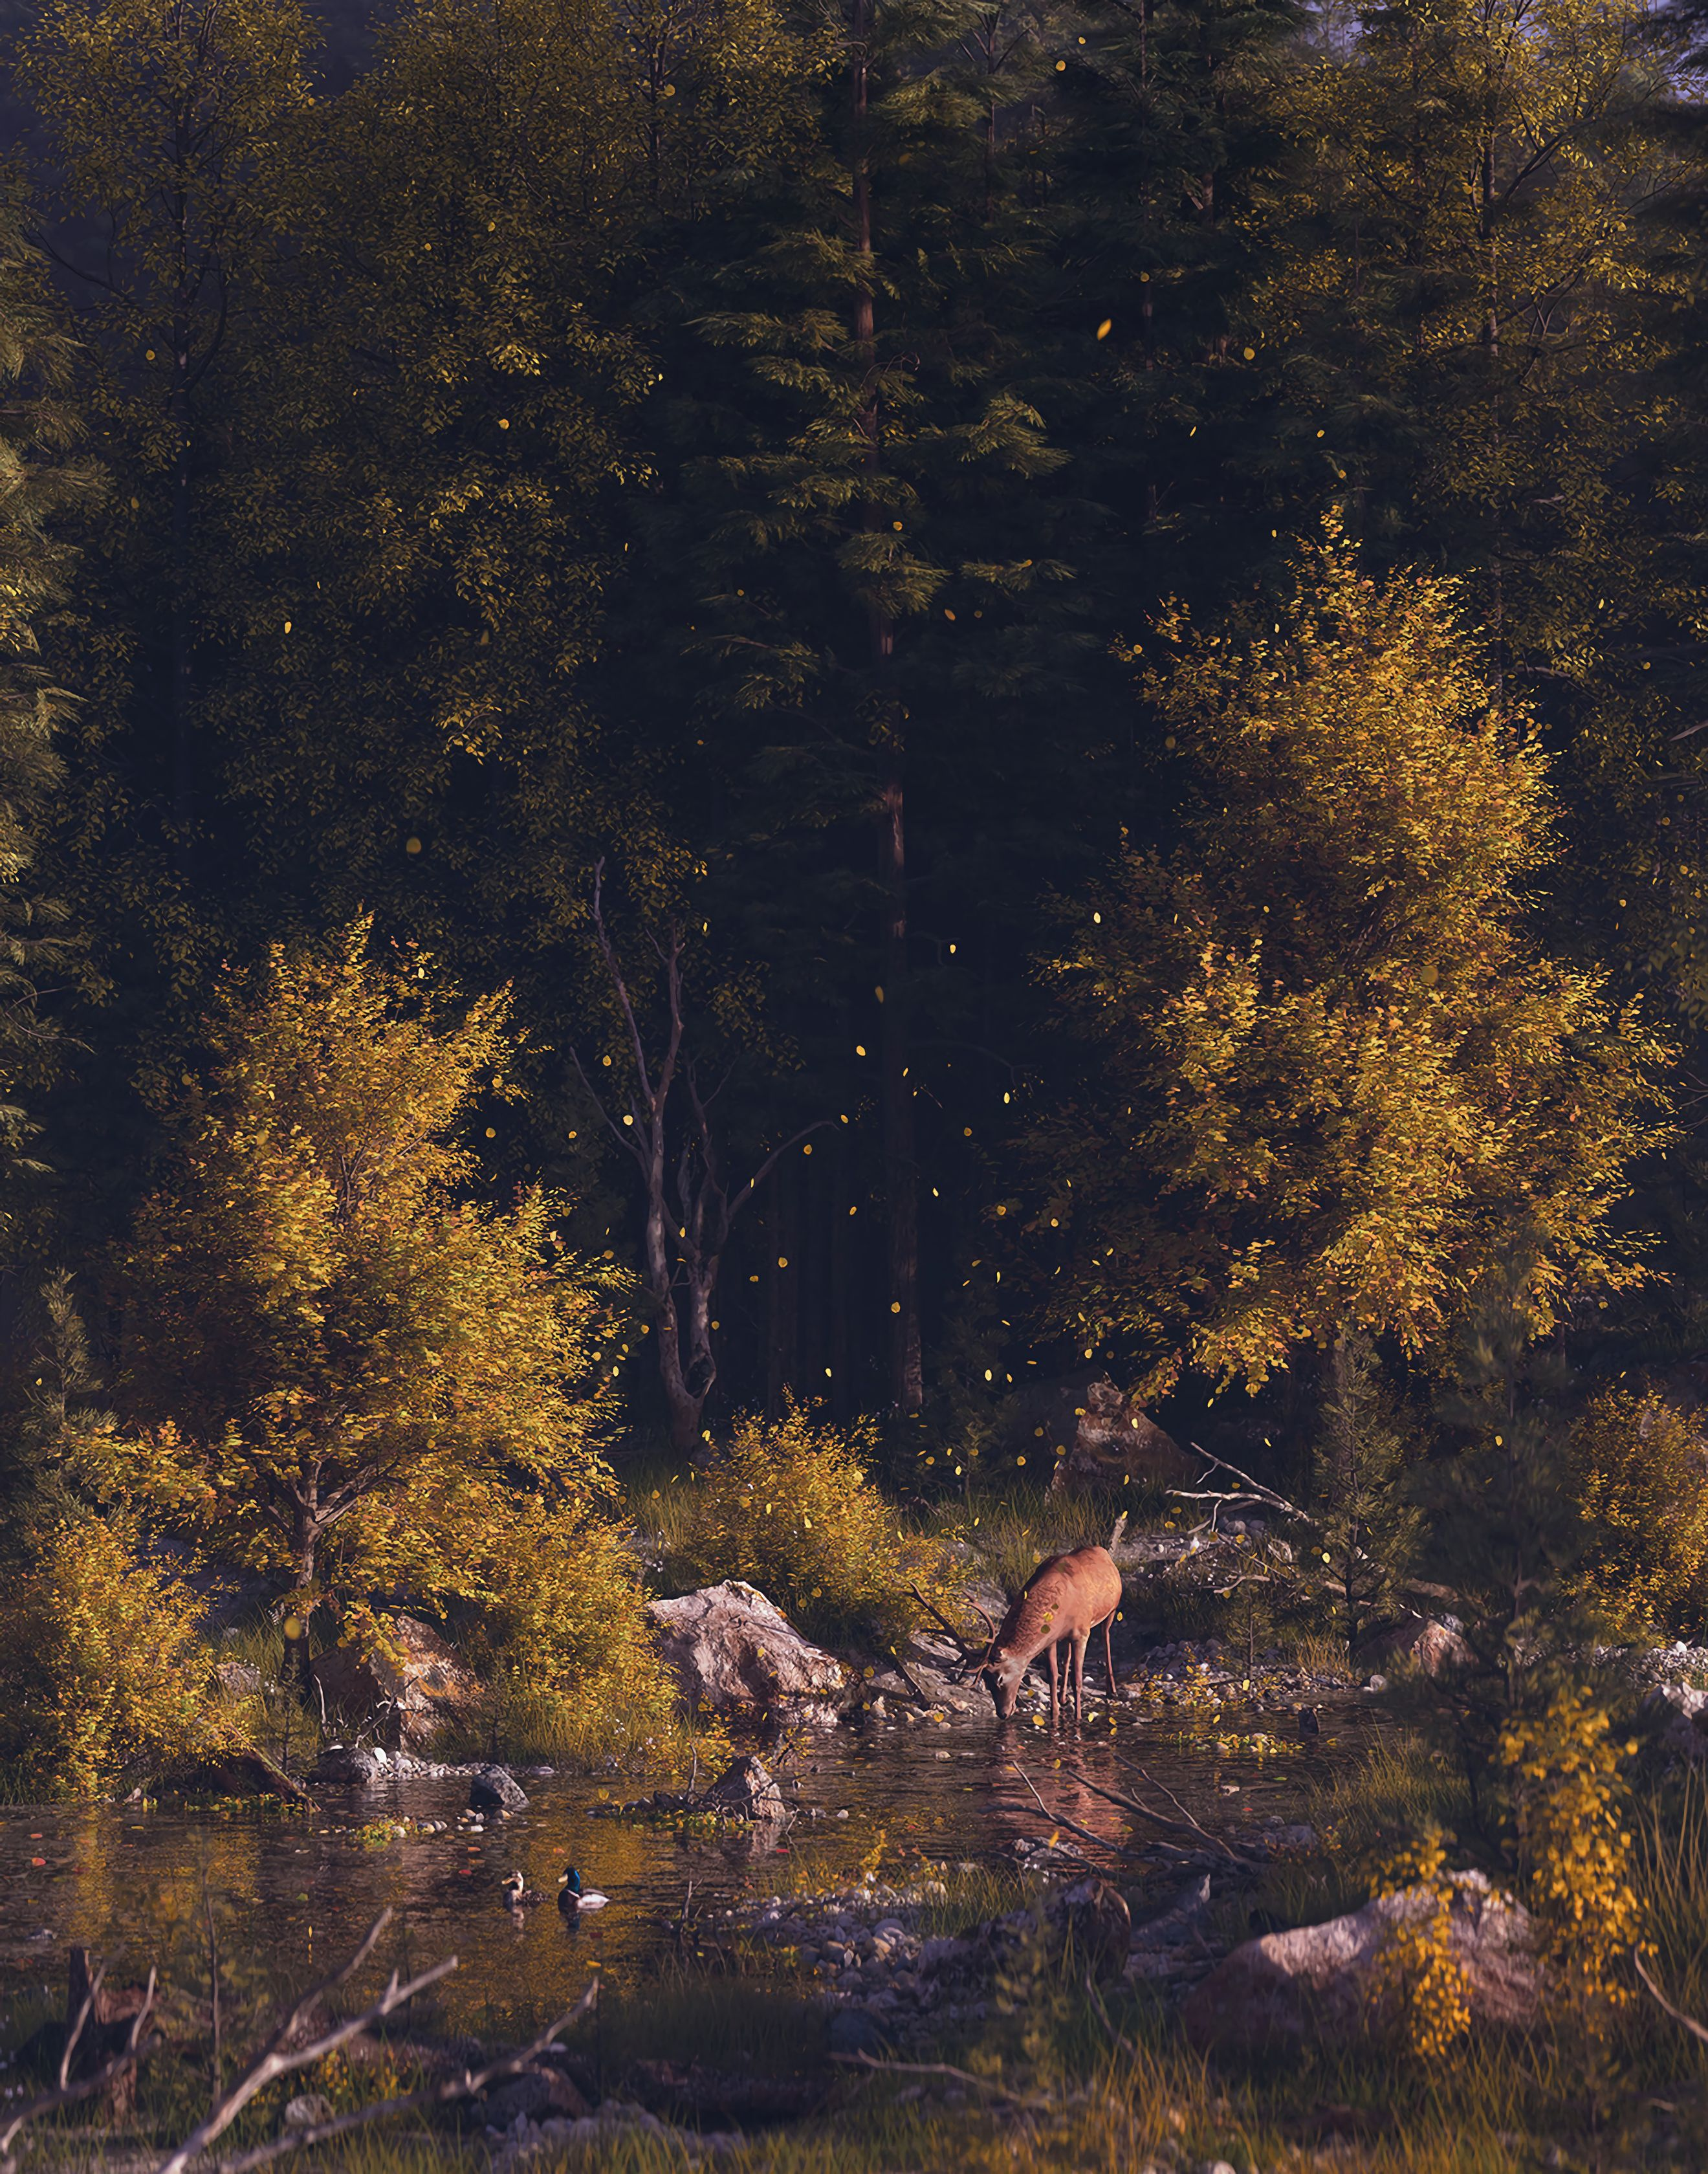 69878 download wallpaper Nature, Deer, Forest, Art, Rivers, Wildlife, Landscape screensavers and pictures for free